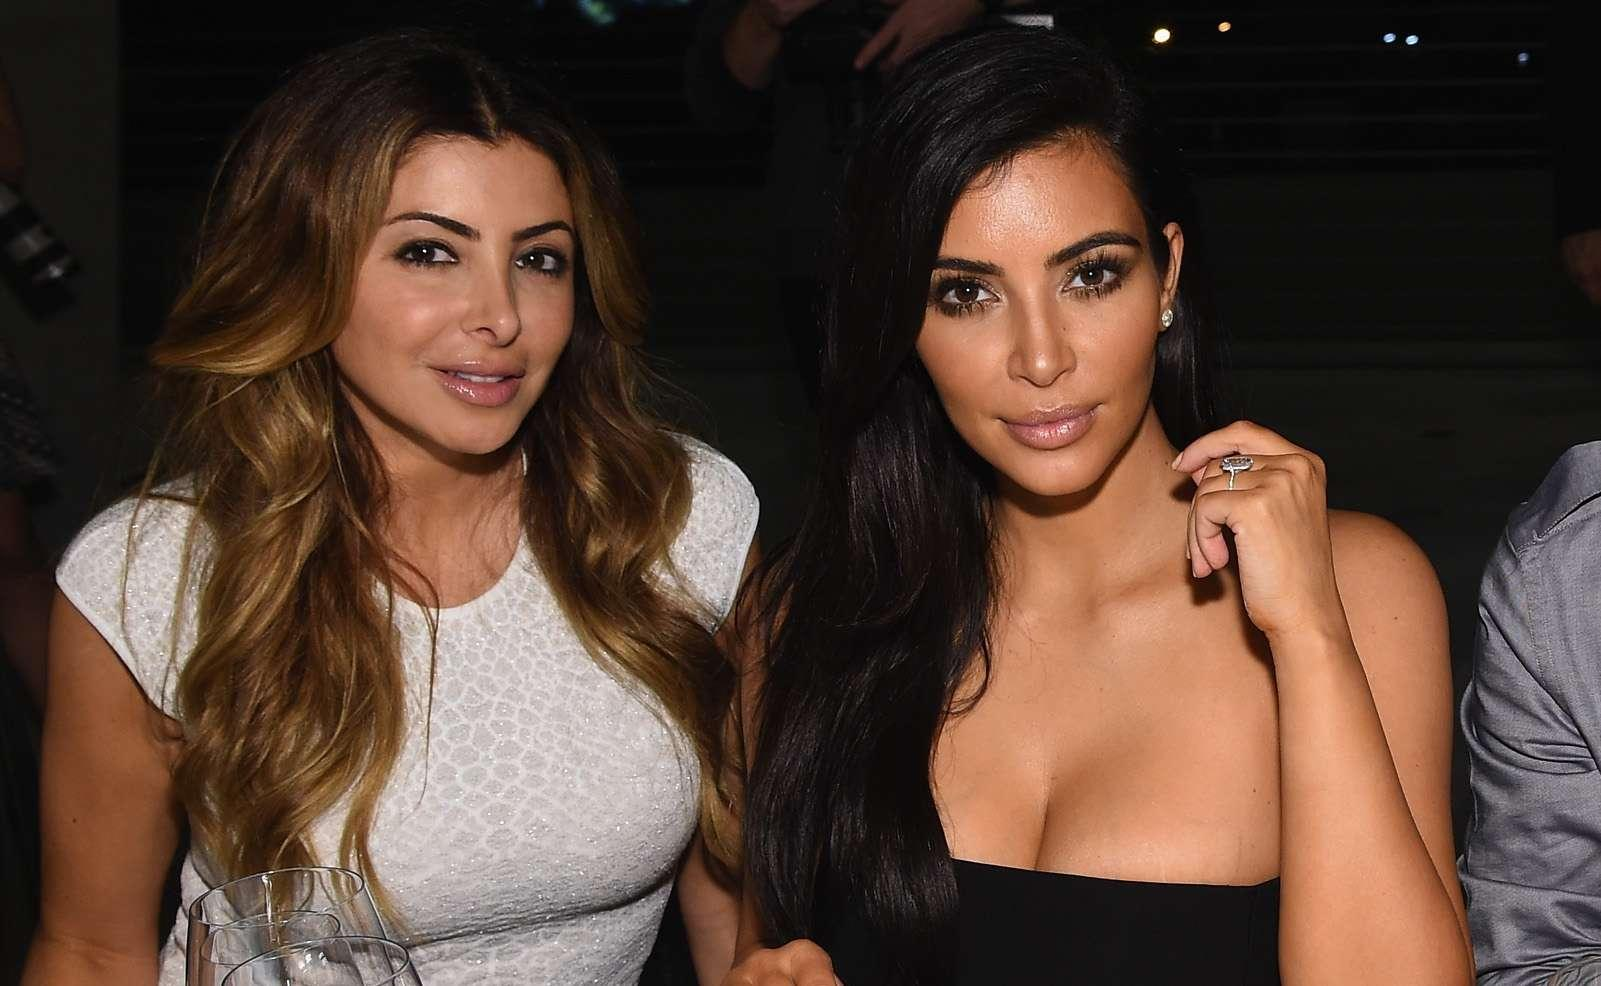 Larsa Pippen Denies Bullying Jordyn Woods As People Call Her Out For Dating Future While Married To Scottie Pippen